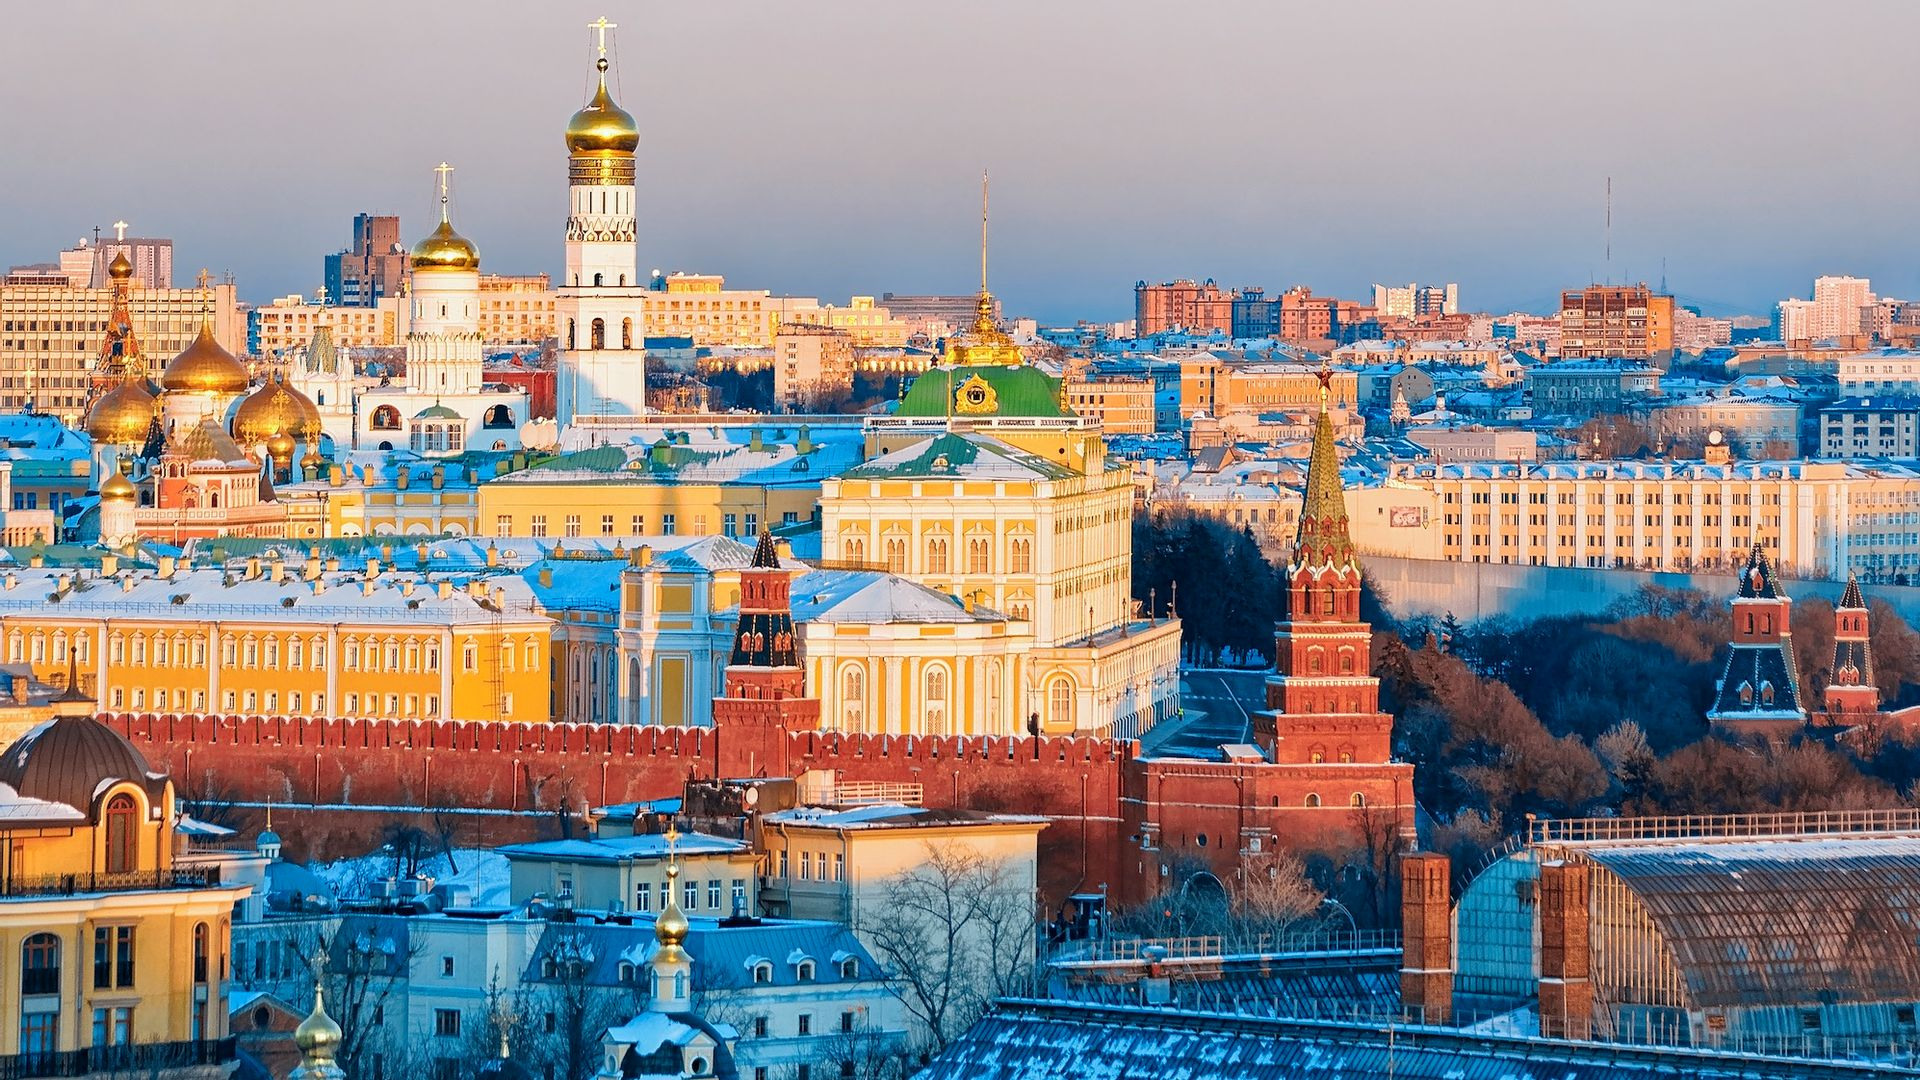 Panorama en hiver, Moscou - Russie